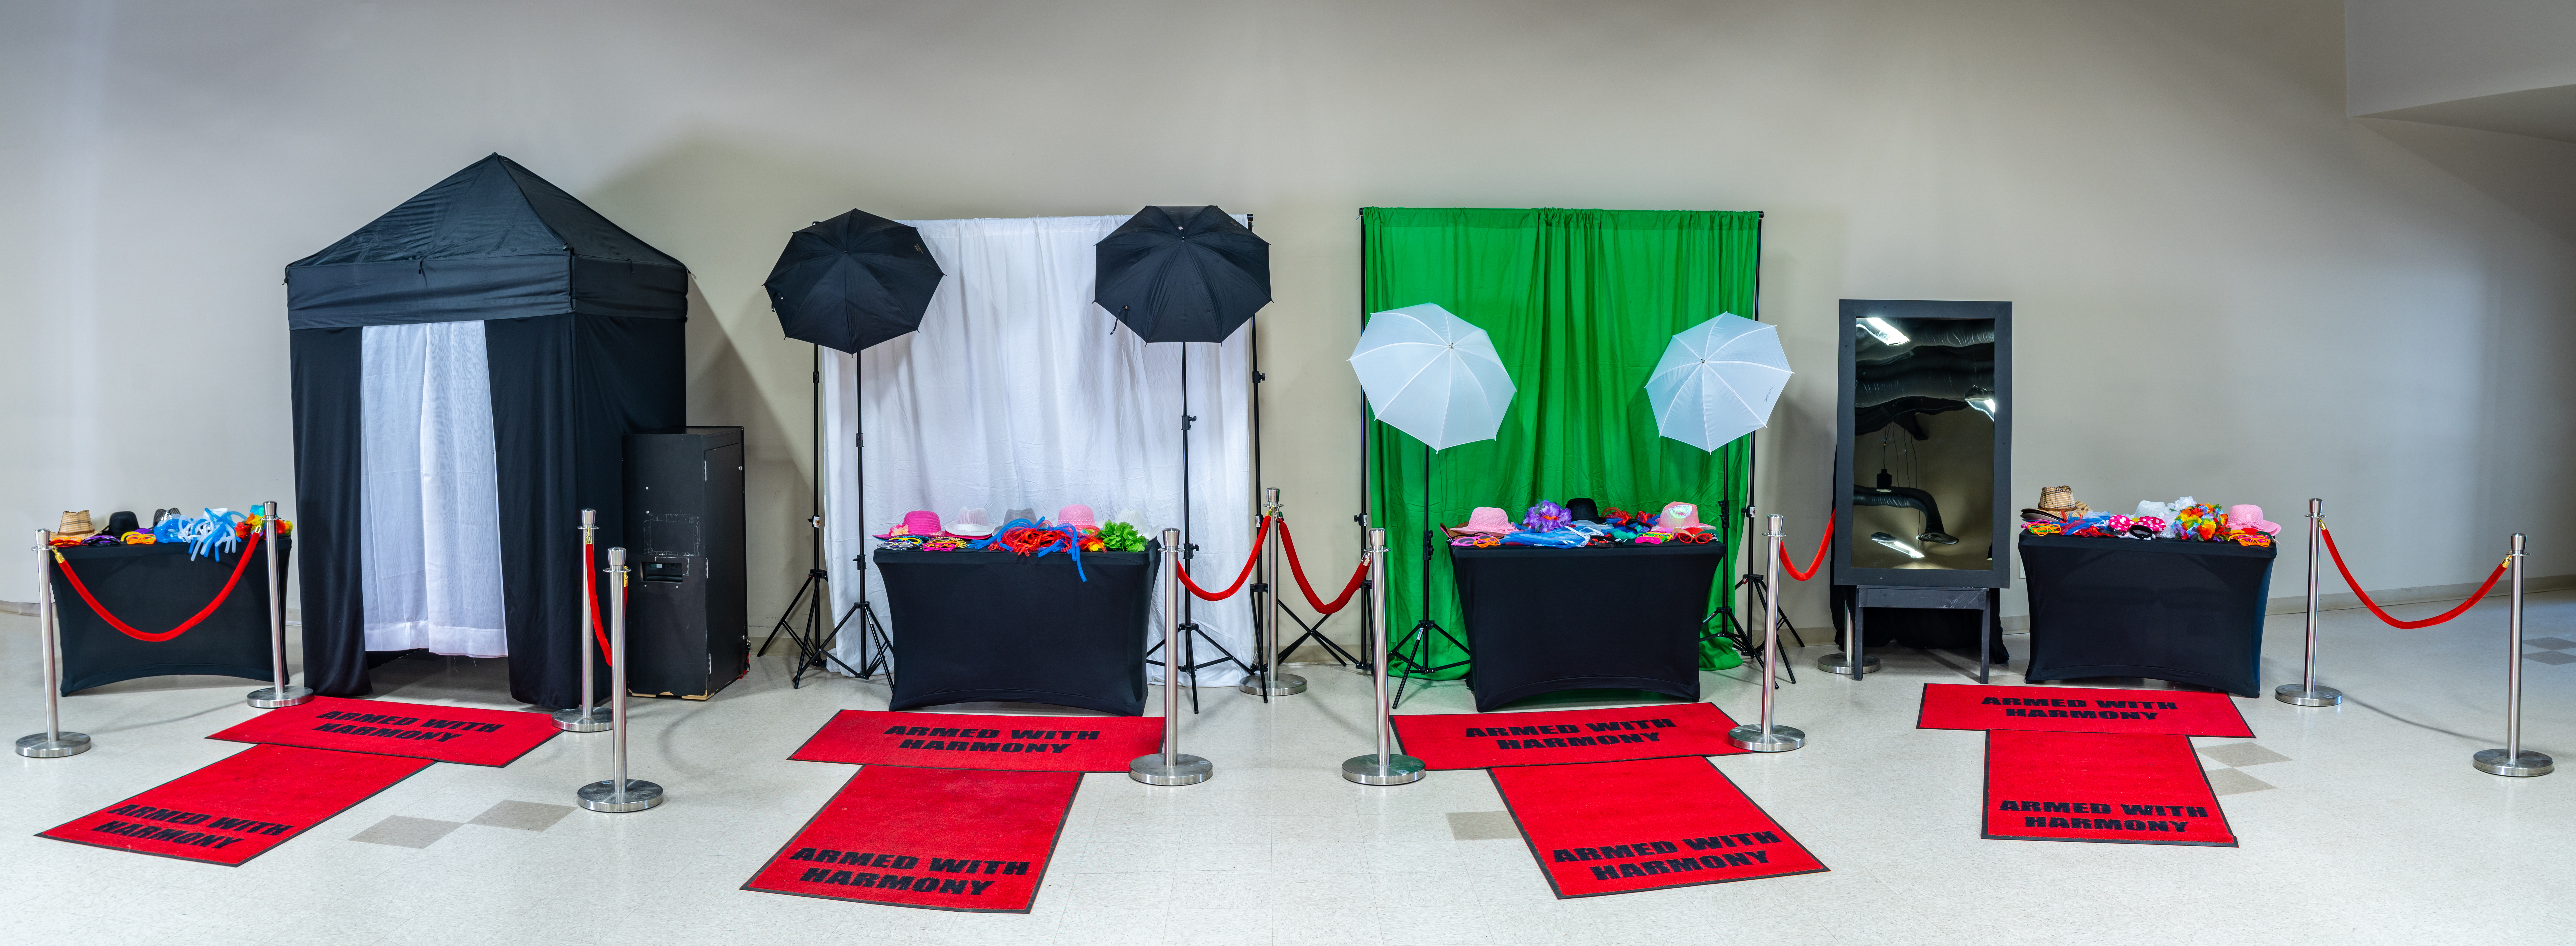 Saskatoon YXE Wedding Photo Booth Rentals  Special Event Photo Booth Rentals